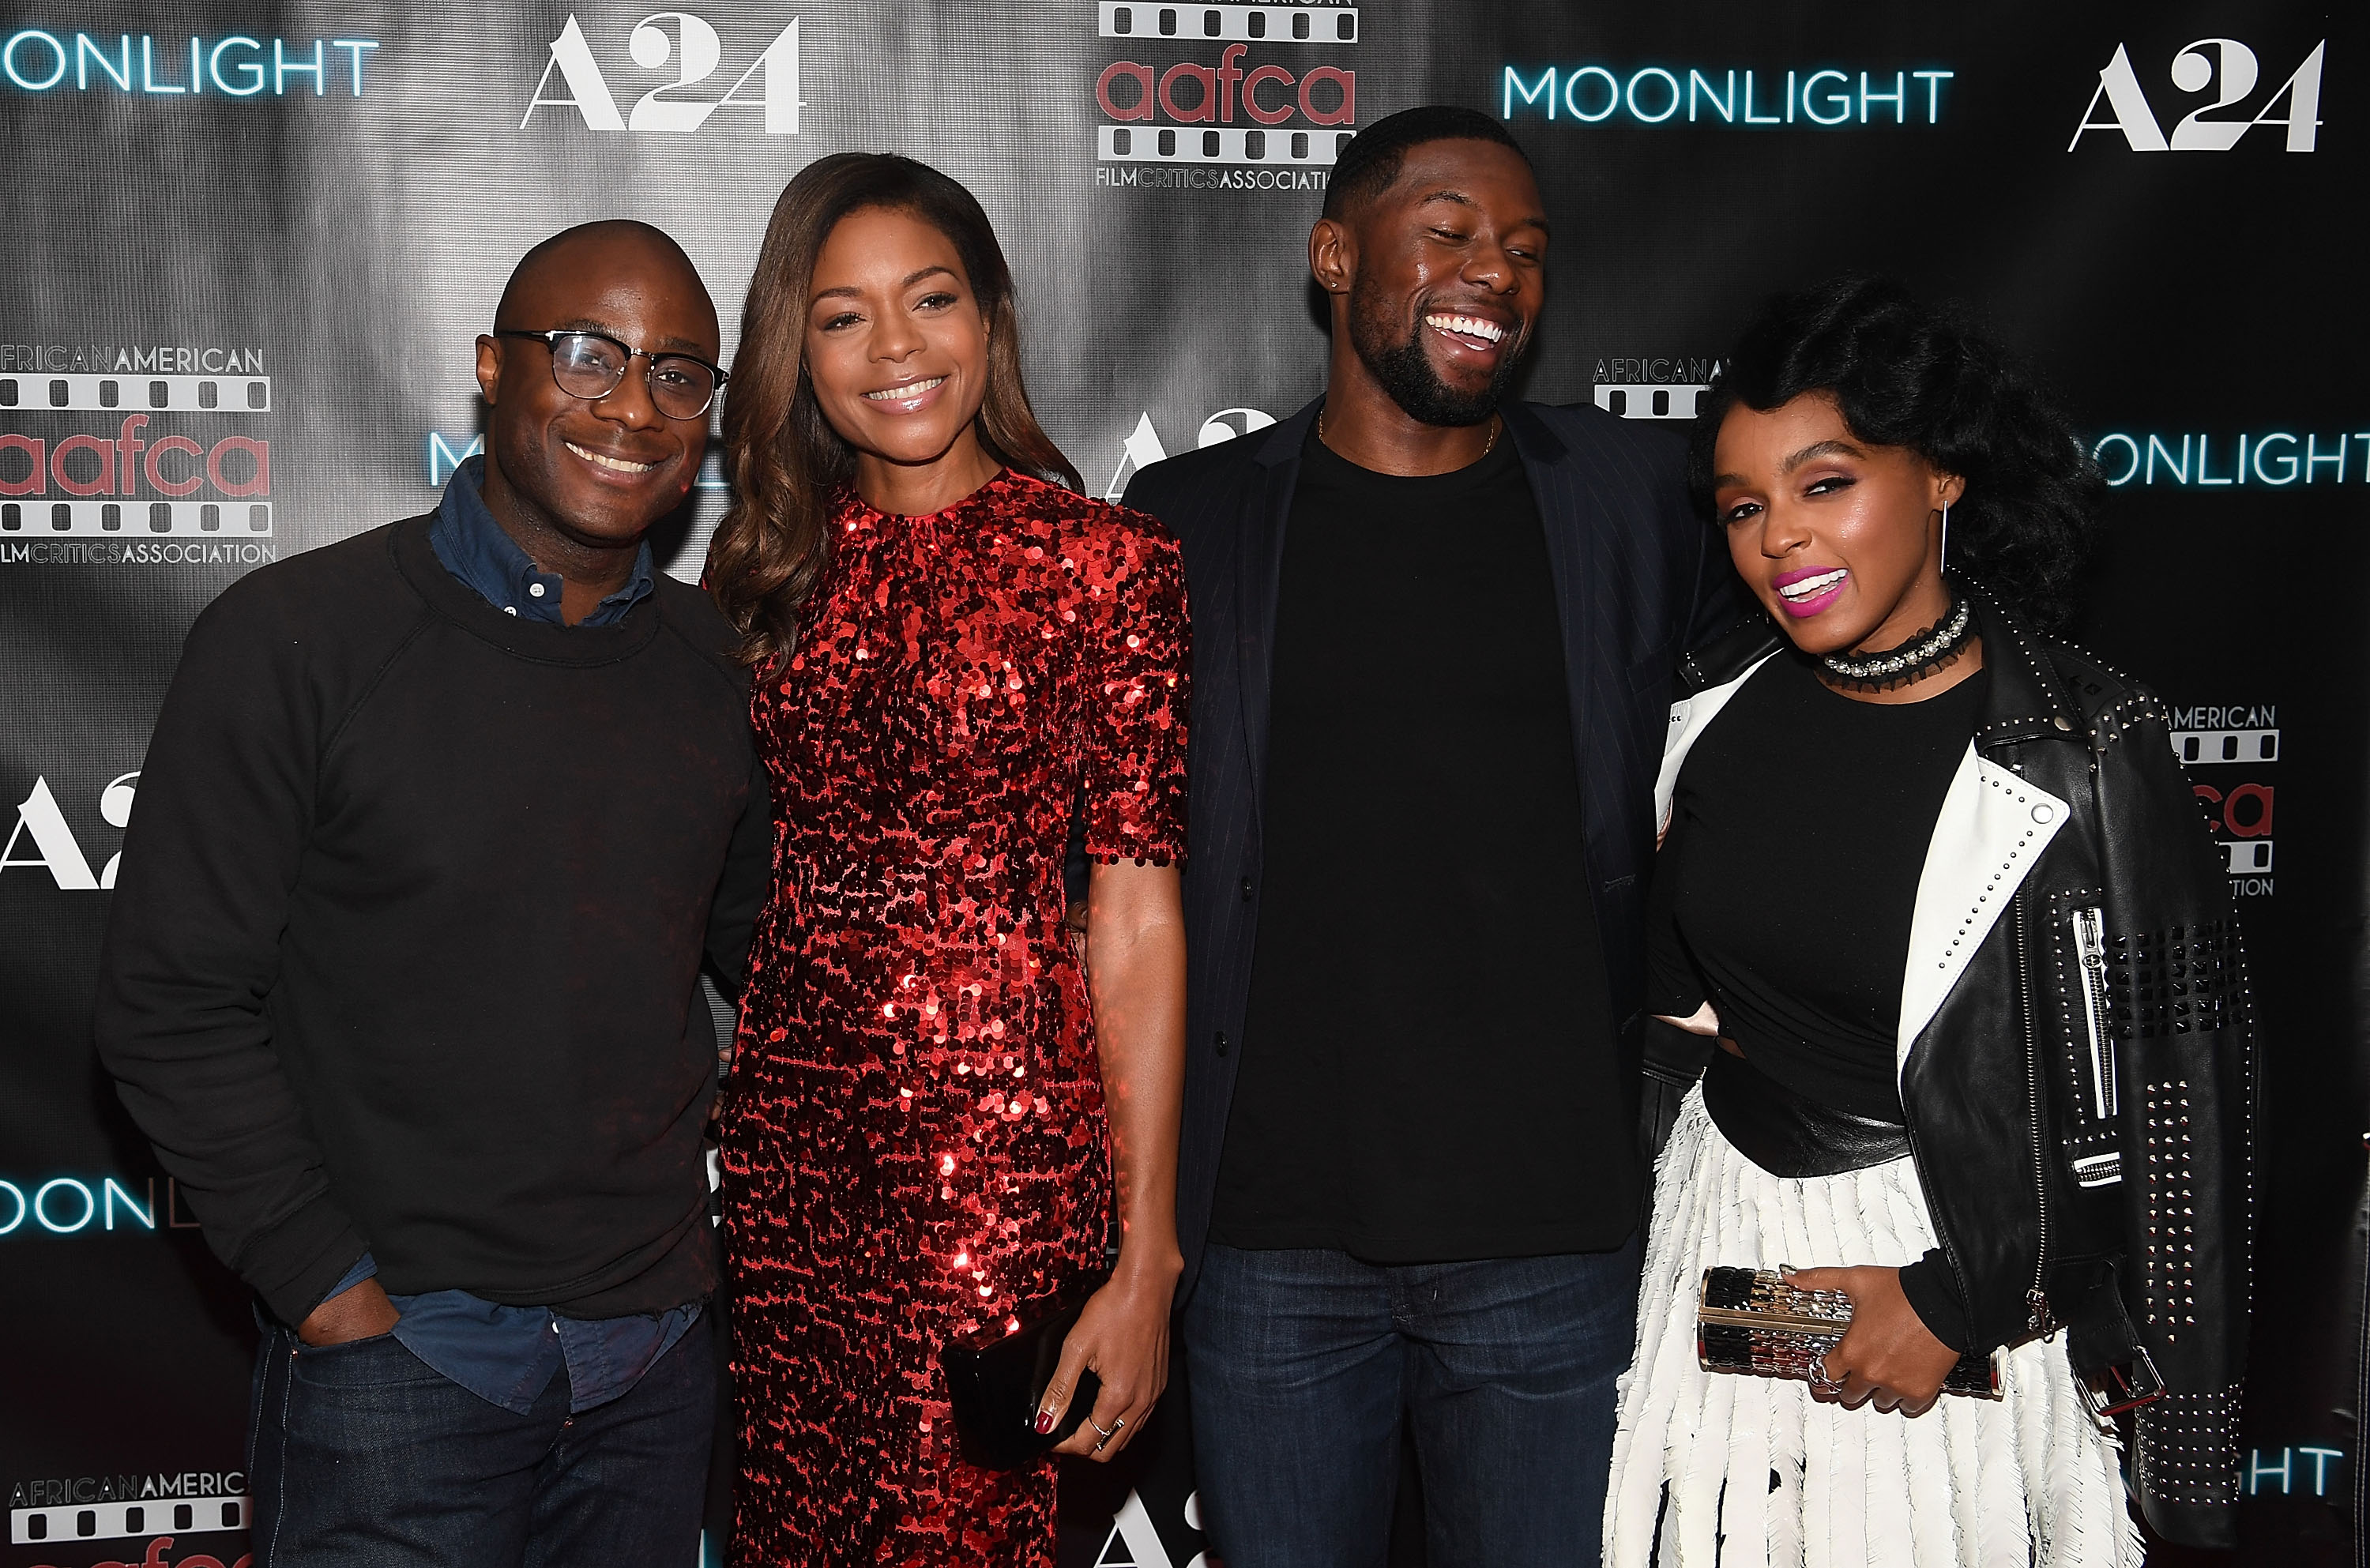 'Moonlight' Atlanta Screening